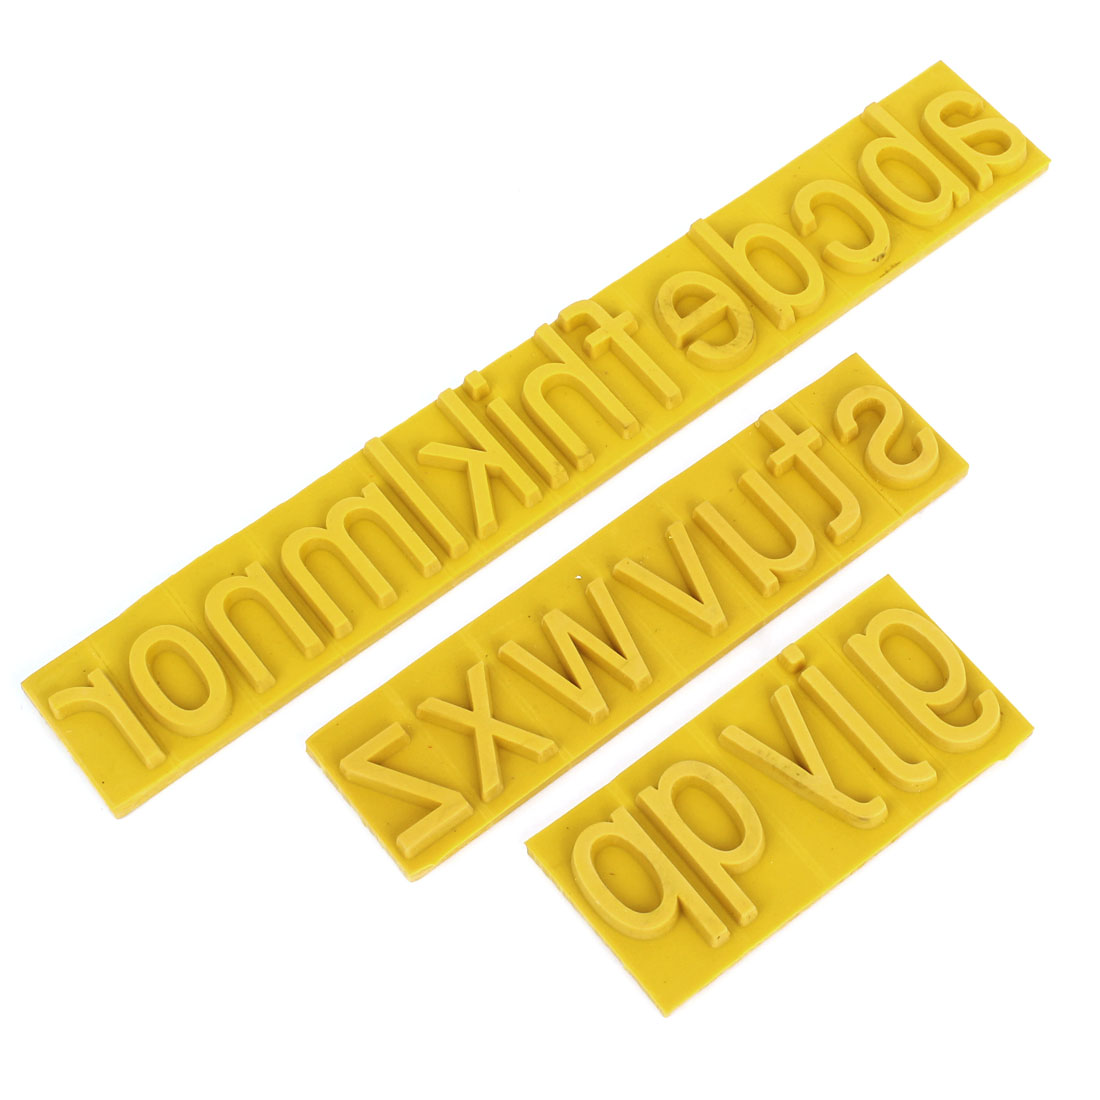 "1"" Lowercase Letter Rubber Stamp Coder Sets for Roller Printer"